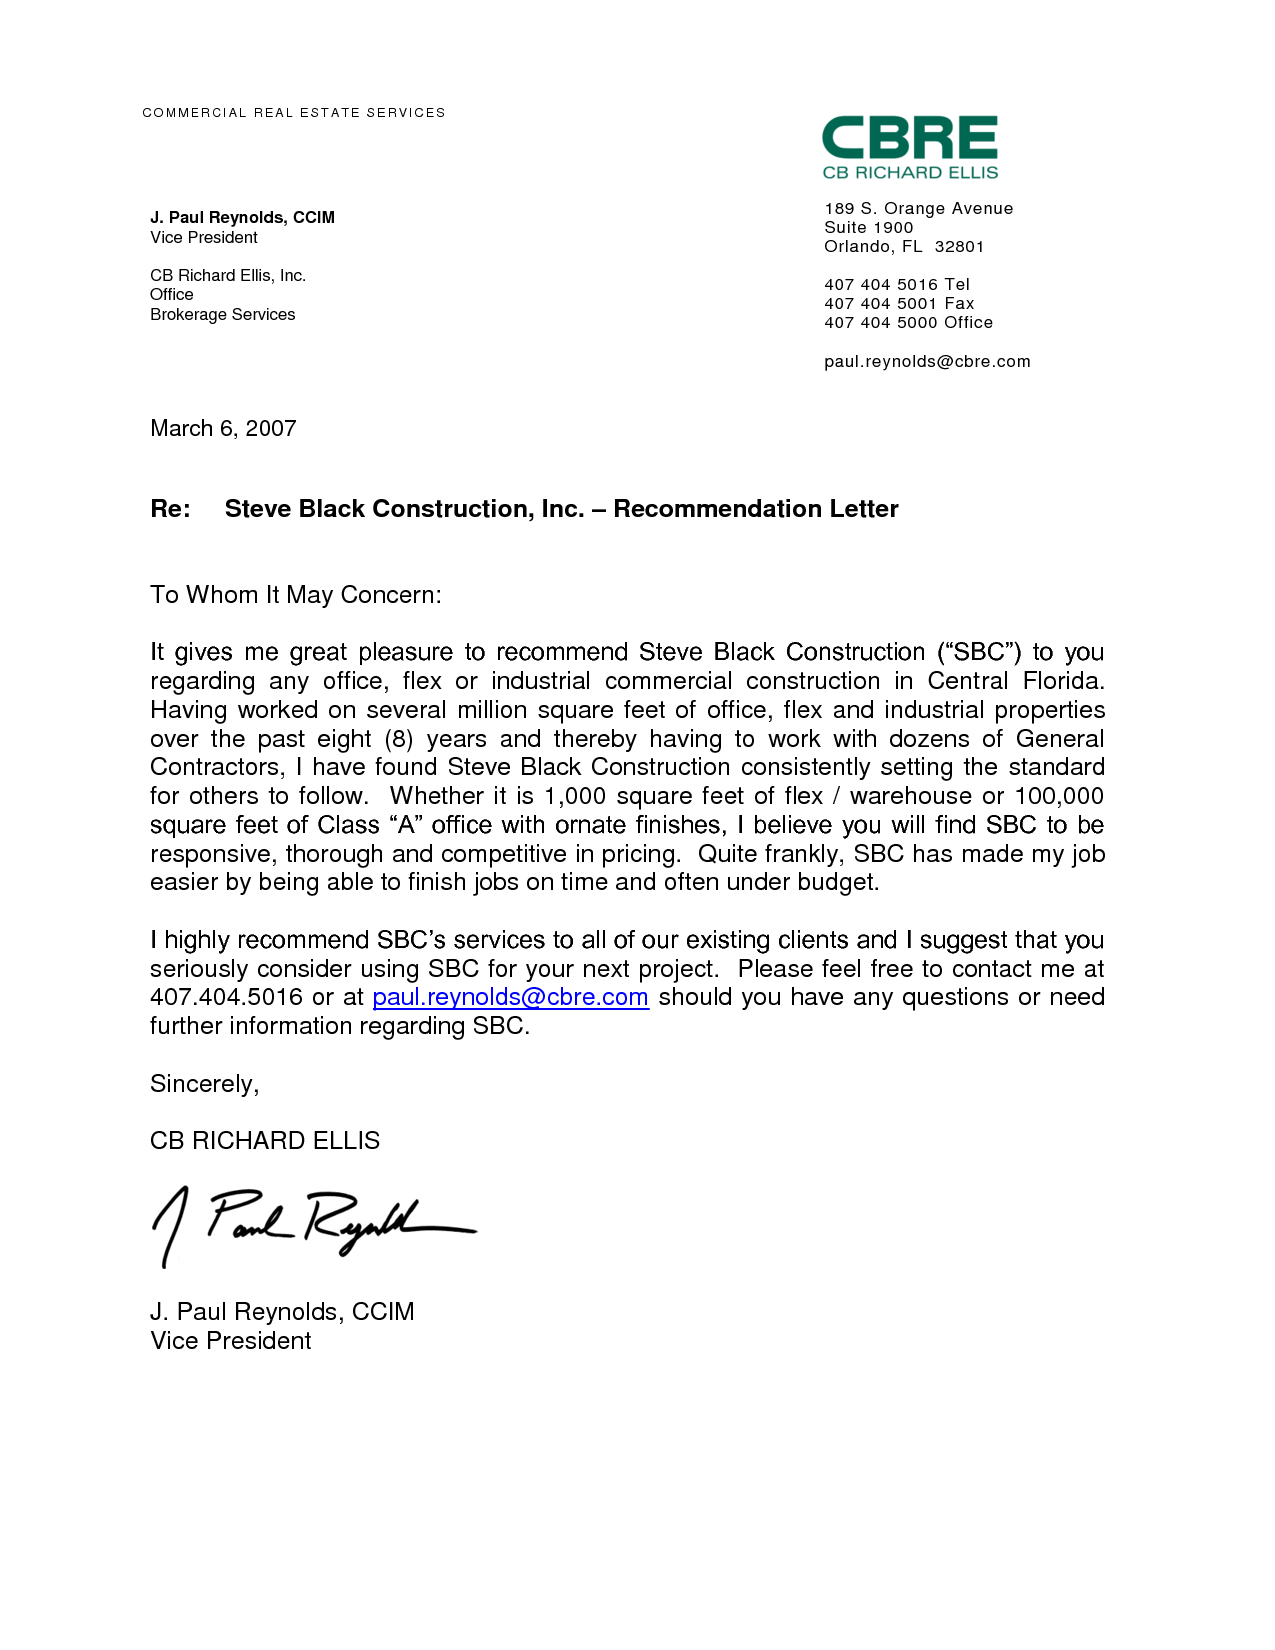 Reference Letter For A Job Reference letter, Scholarship